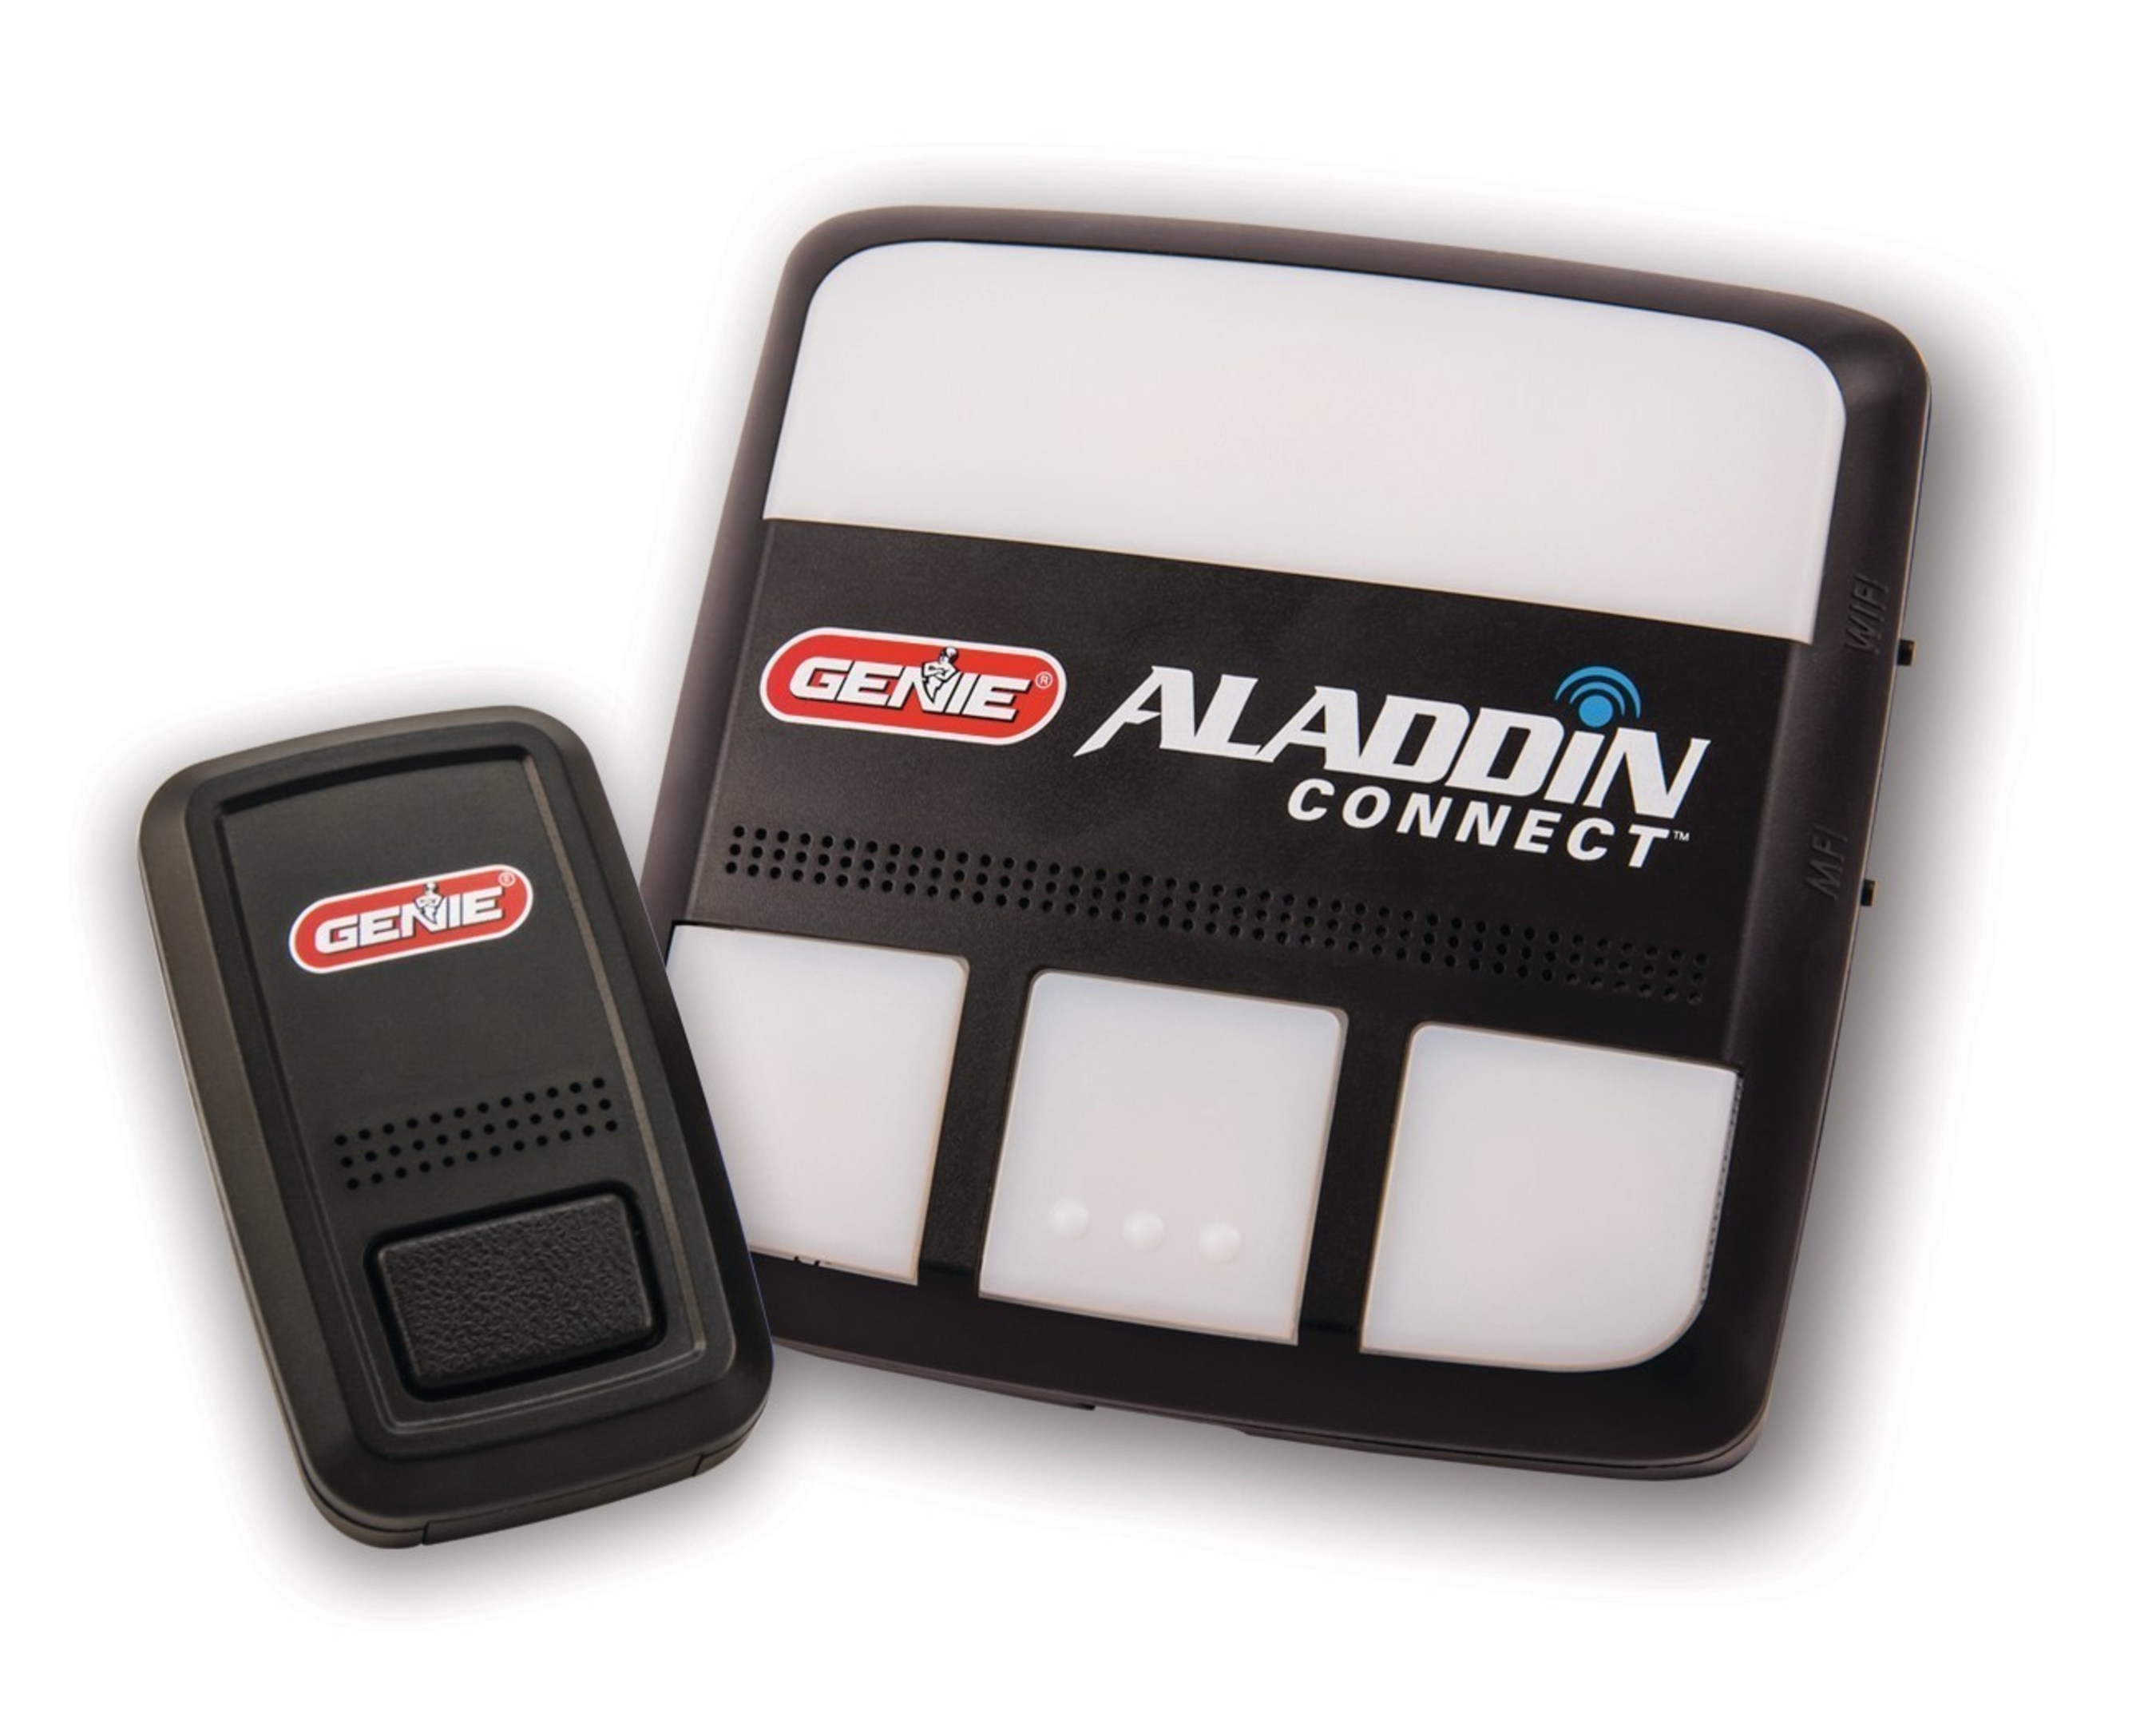 The Wi-Fi(R) enabled control module of the Aladdin Connect system can be used in conjunction with, or in place of, the opener's standard wall console.